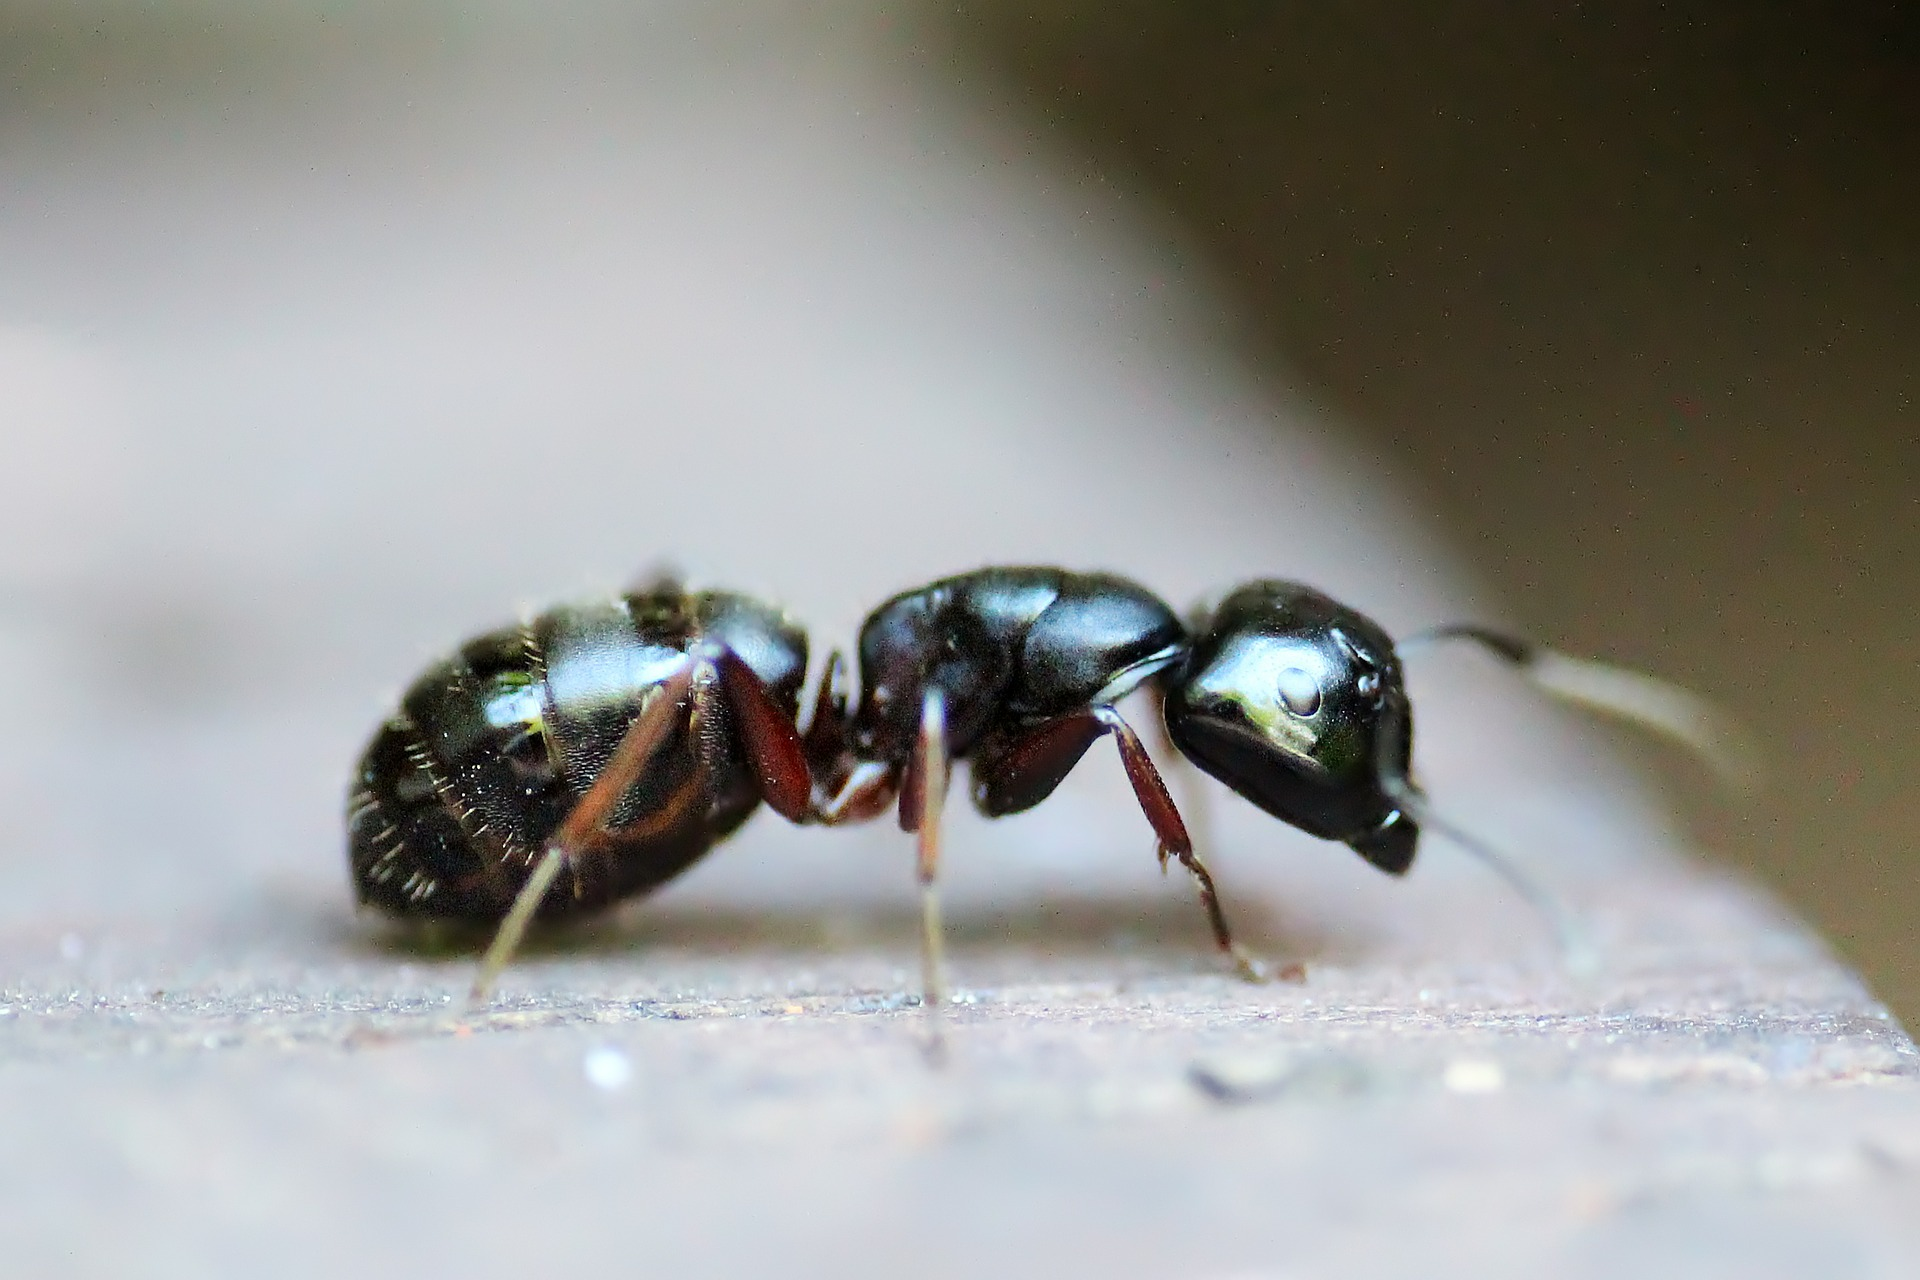 Ants and Termite